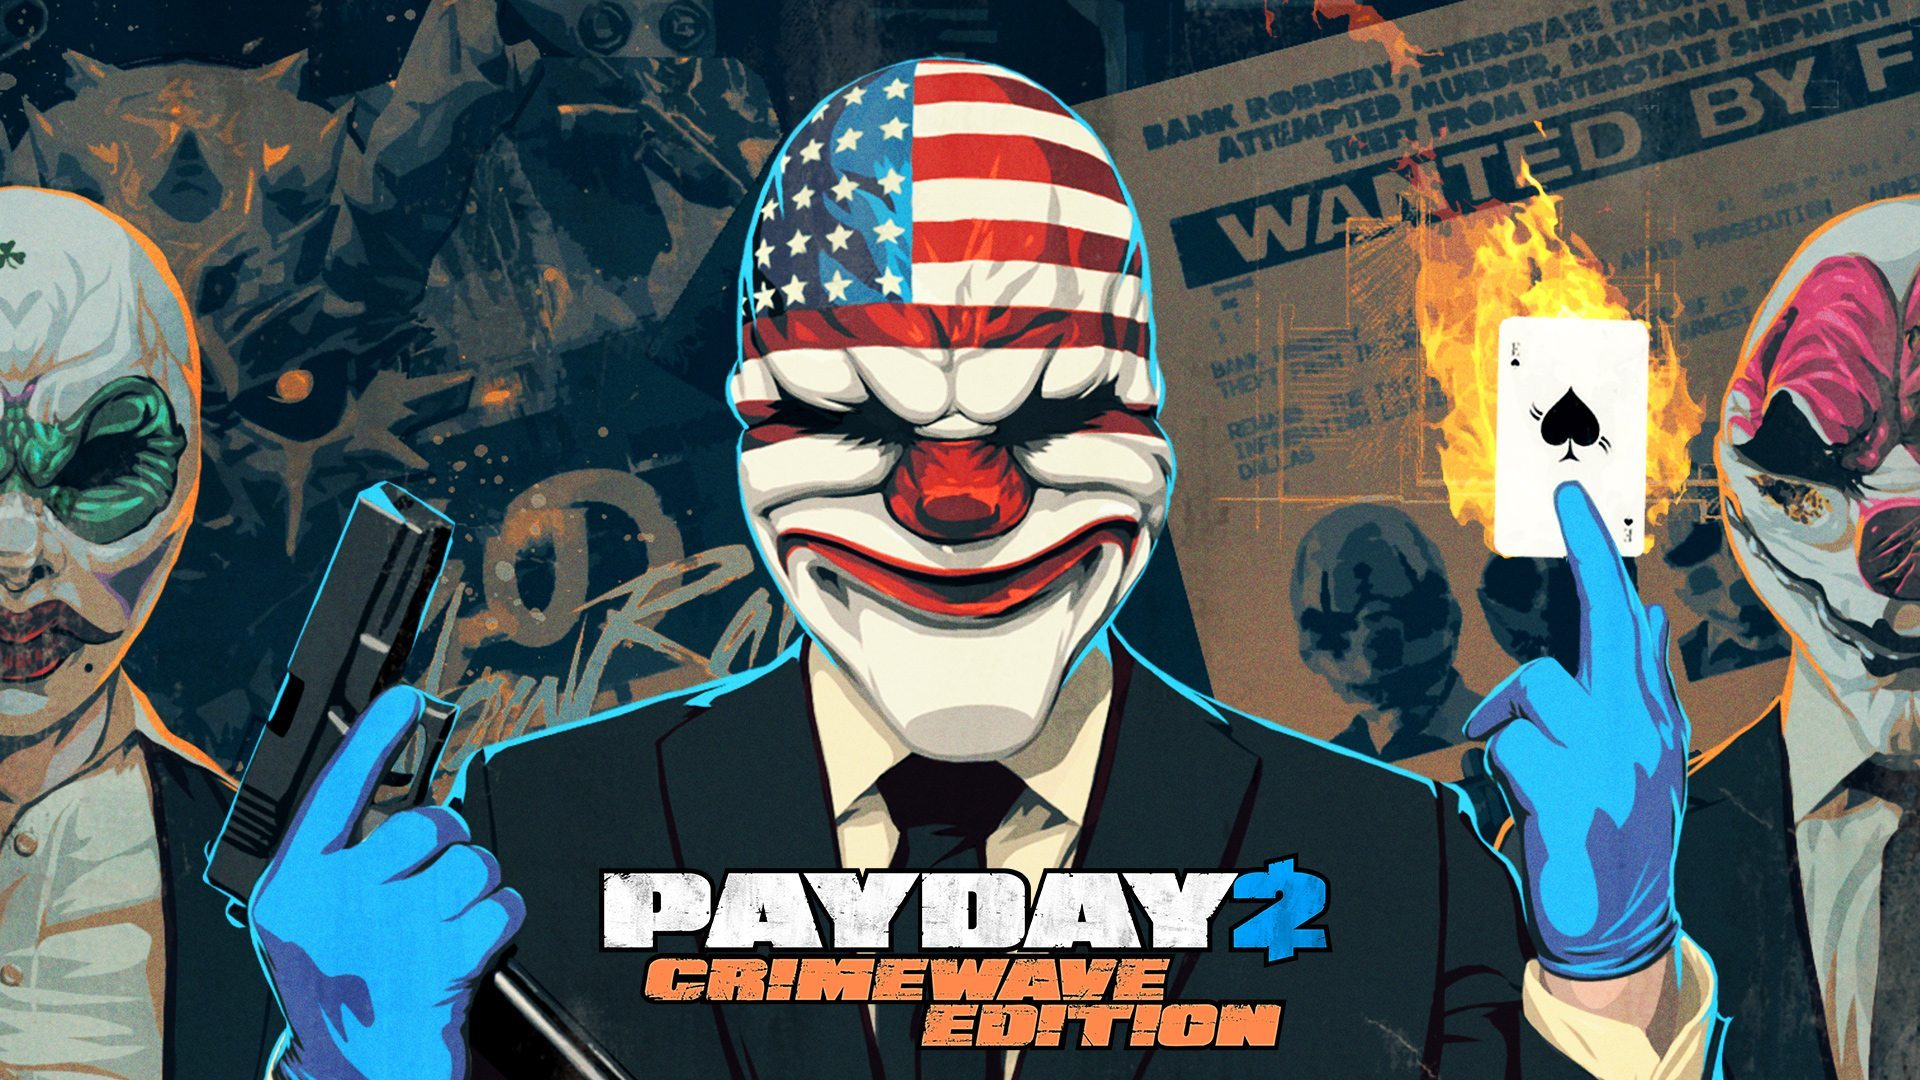 Payday_2_Crimewave-Edition-Bago_2015